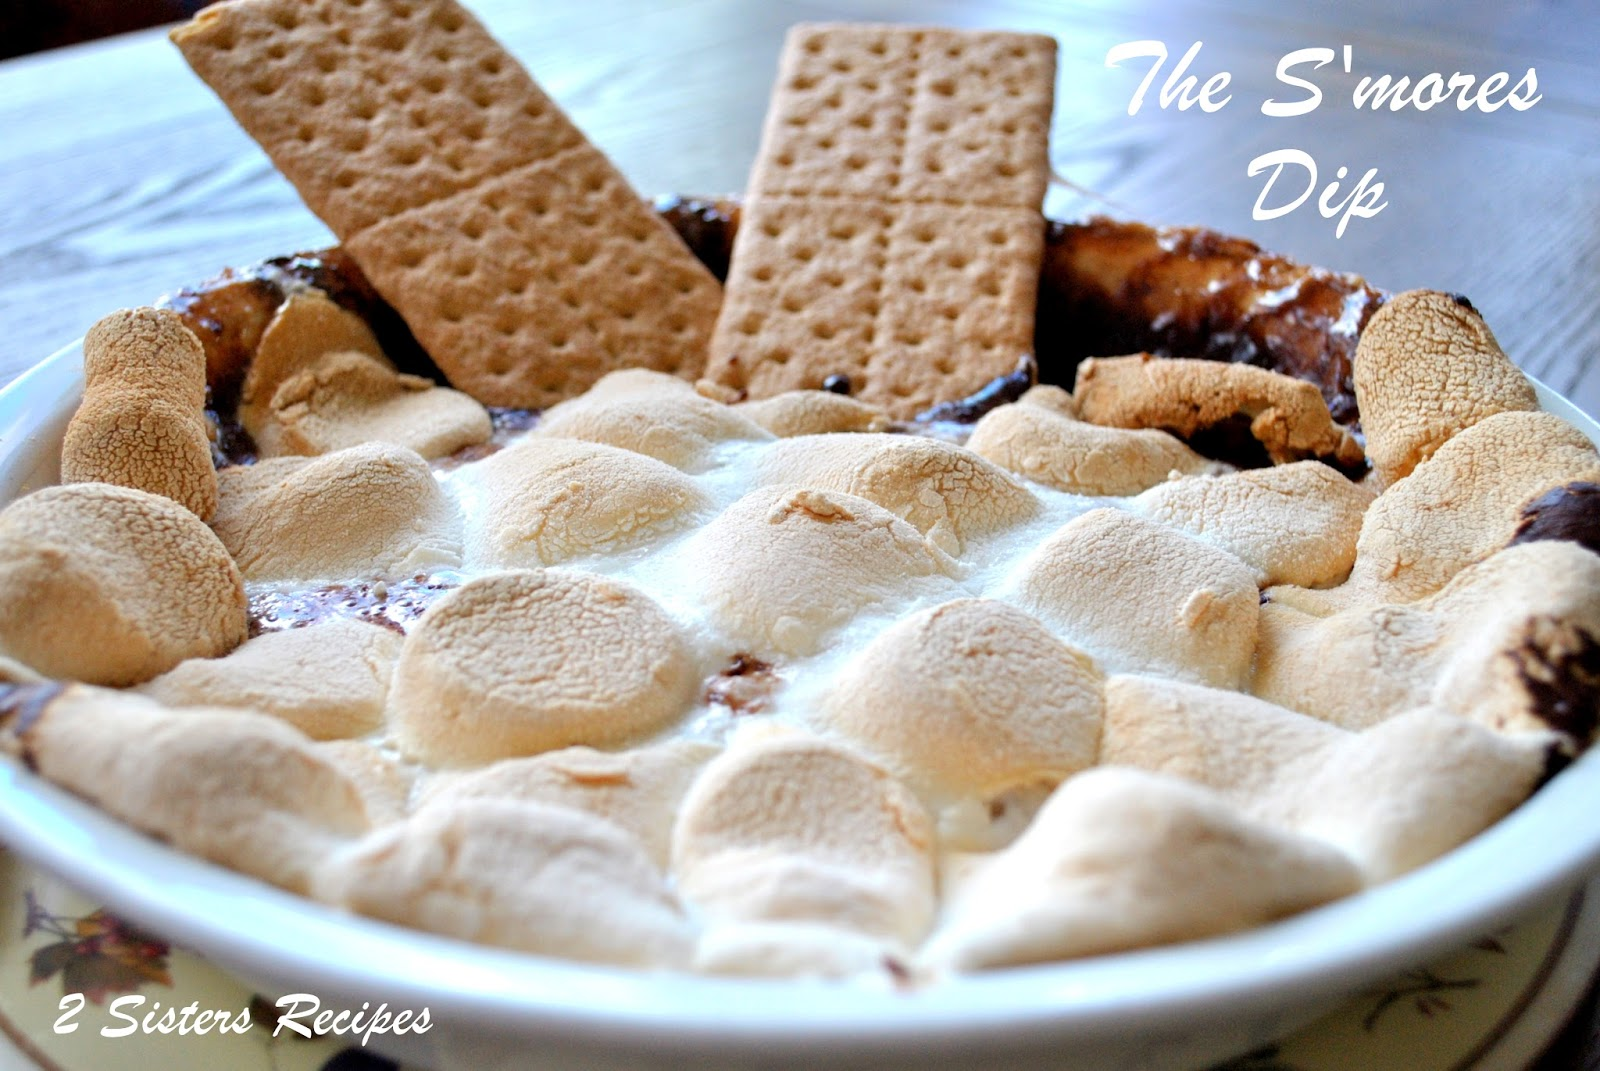 Sisters Recipes... by Anna and Liz: The S'mores Dip